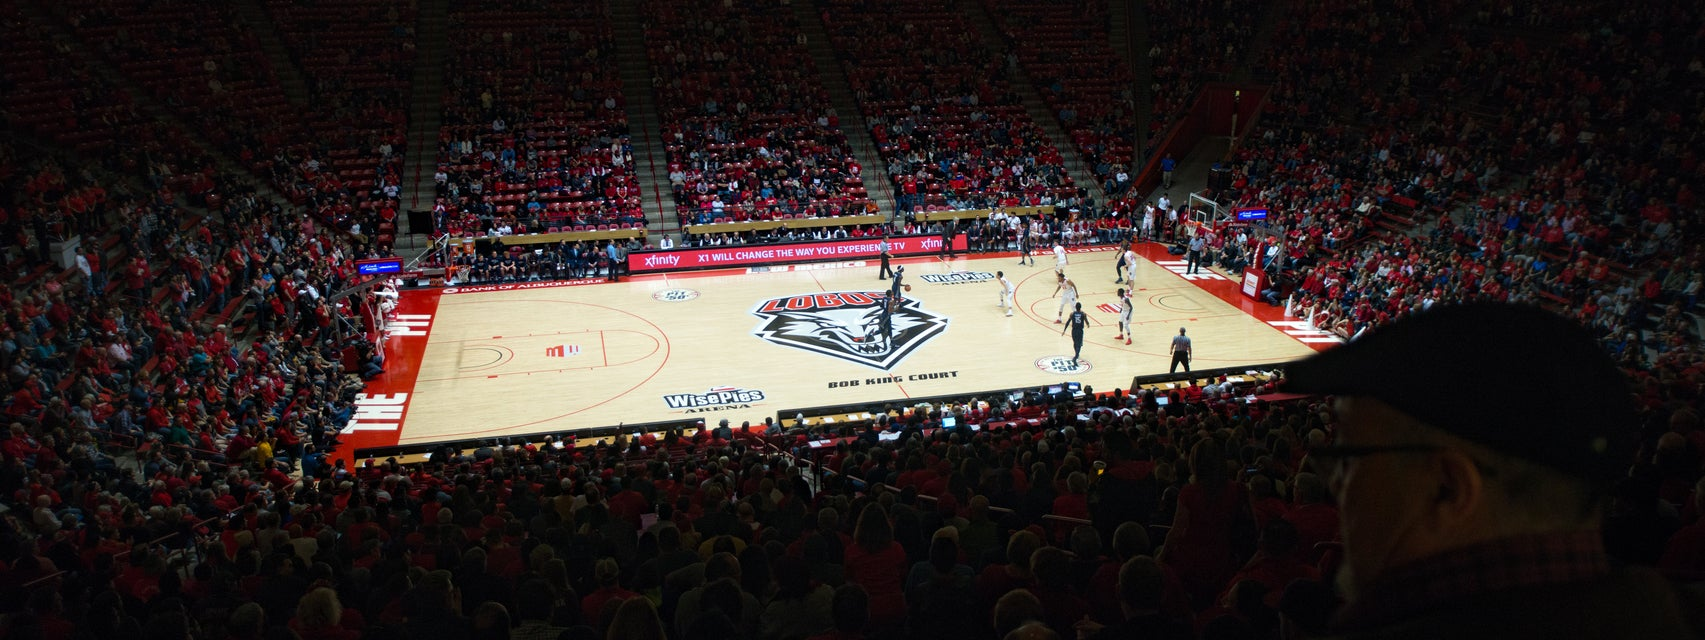 New Mexico Basketball Tickets